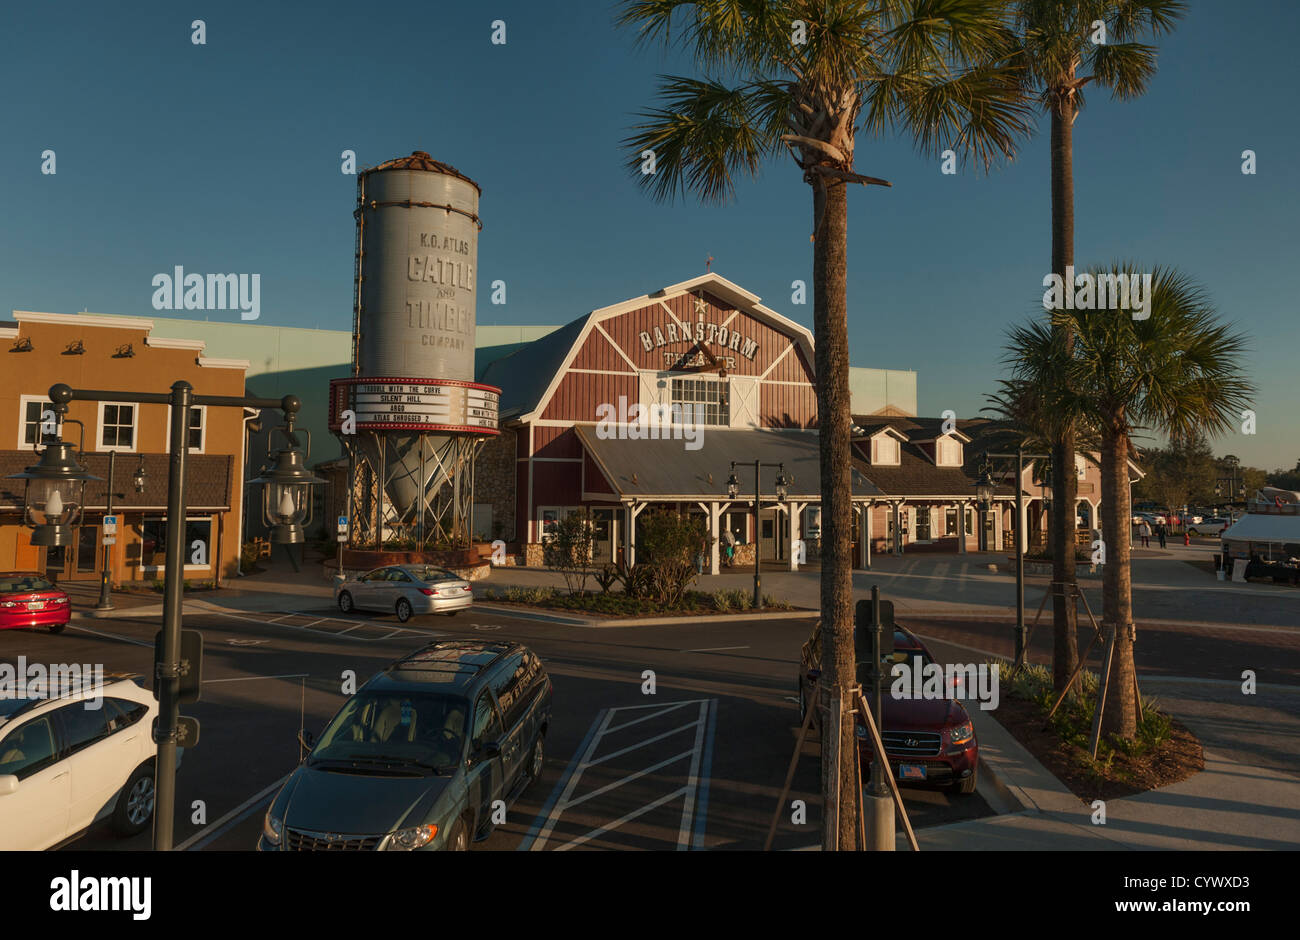 Golf Orlando Florida Stock Photos & Golf Orlando Florida Stock ...